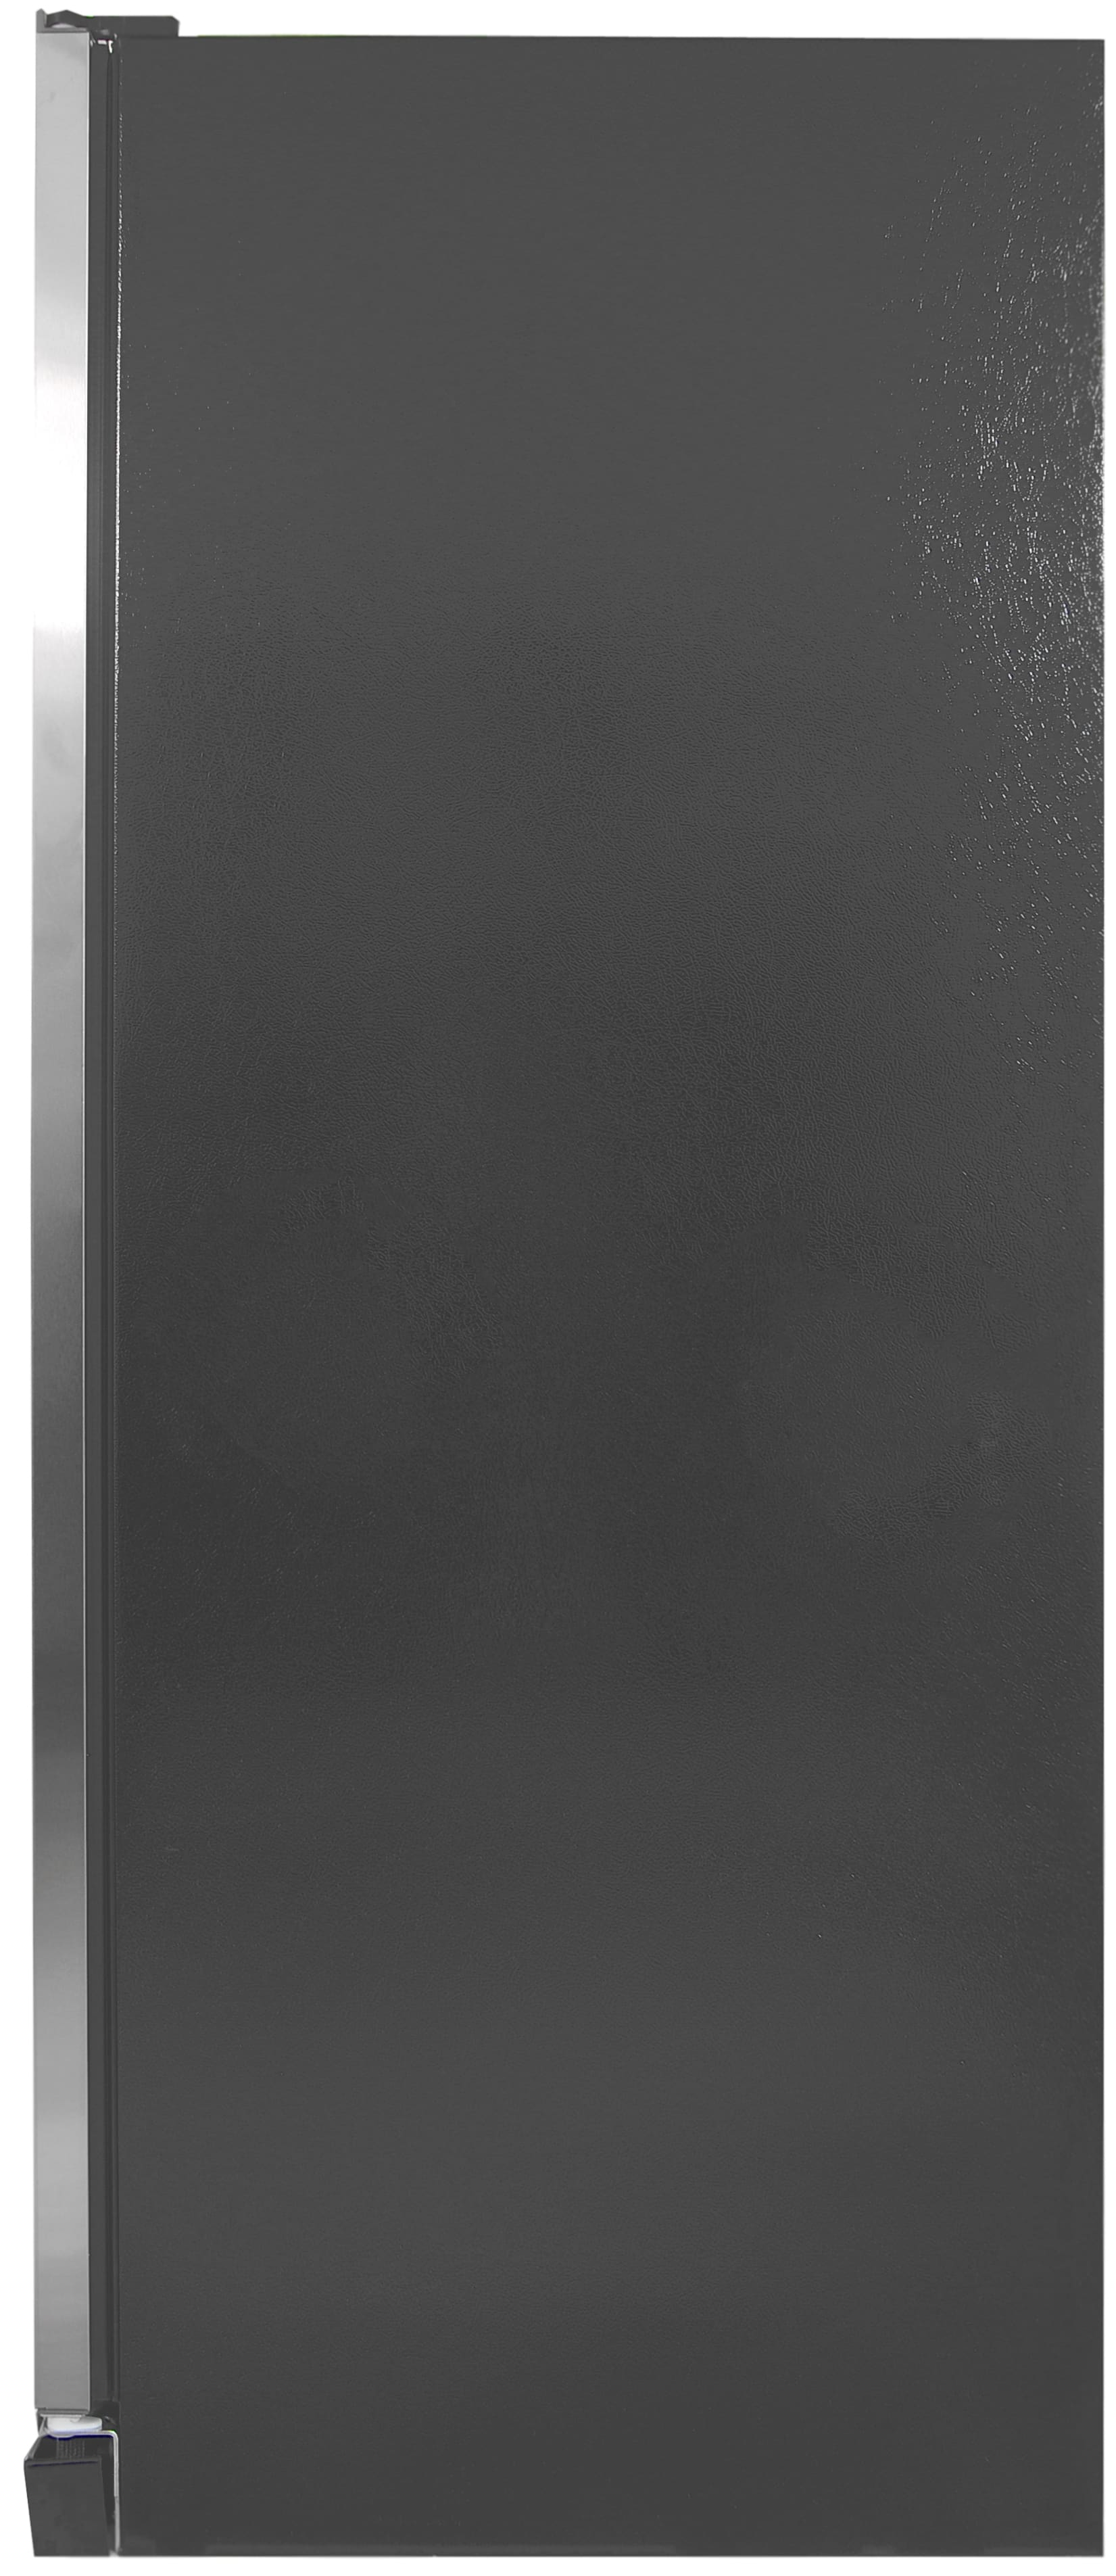 The black sides of the Kenmore Elite 28093 do clash a bit with the stainless front.